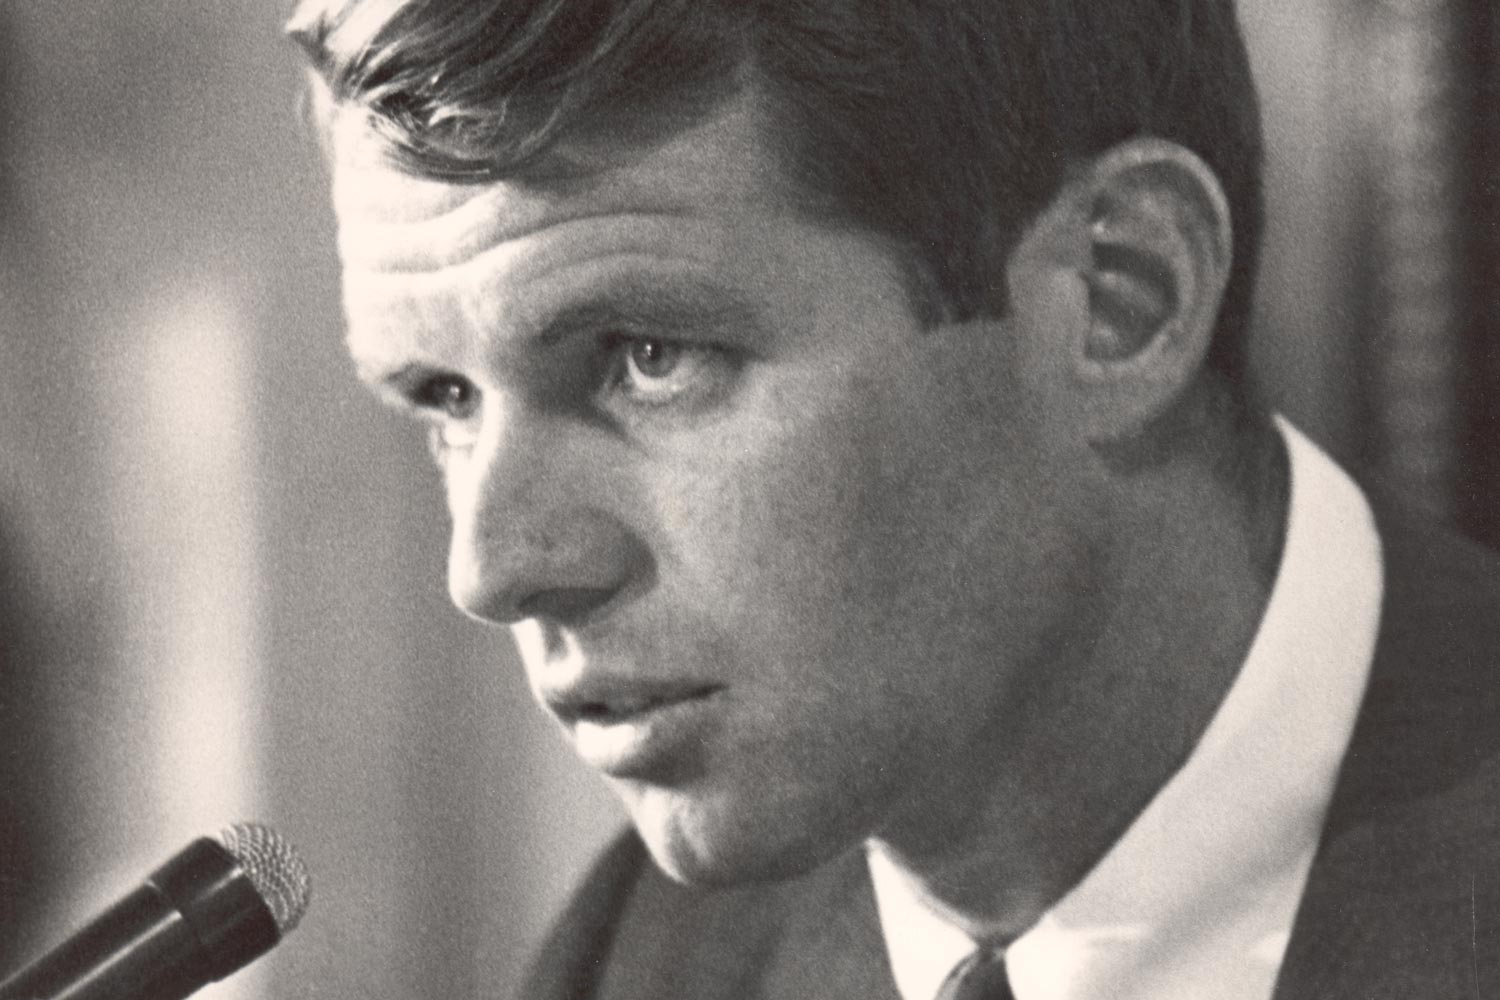 Robert F. Kennedy spoke at the Law School in this undated photograph.